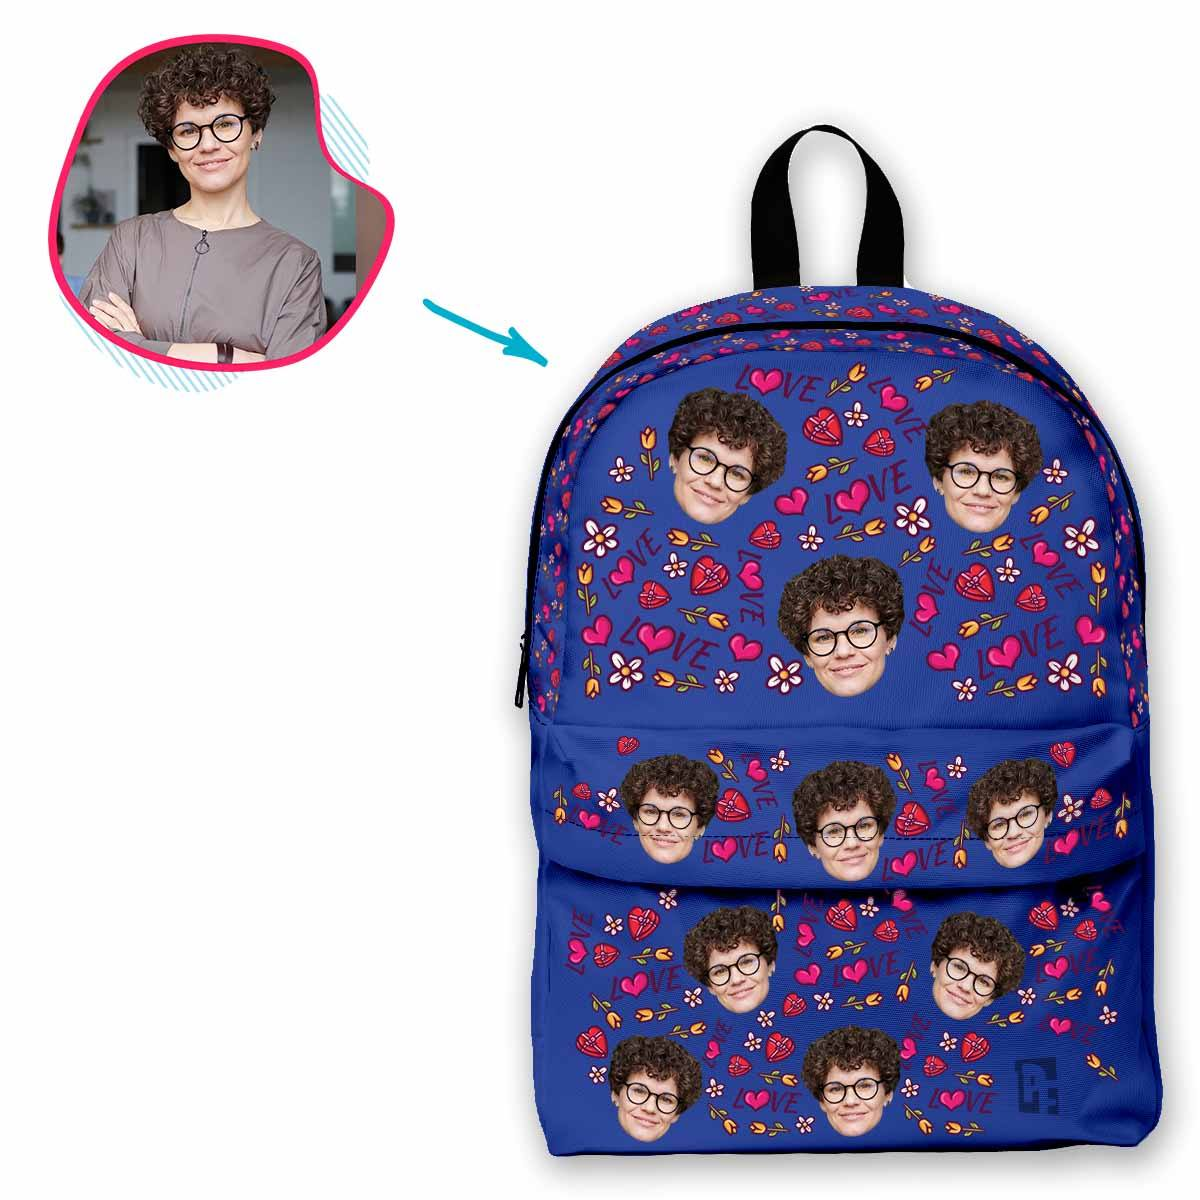 darkblue Hearts and Flowers classic backpack personalized with photo of face printed on it